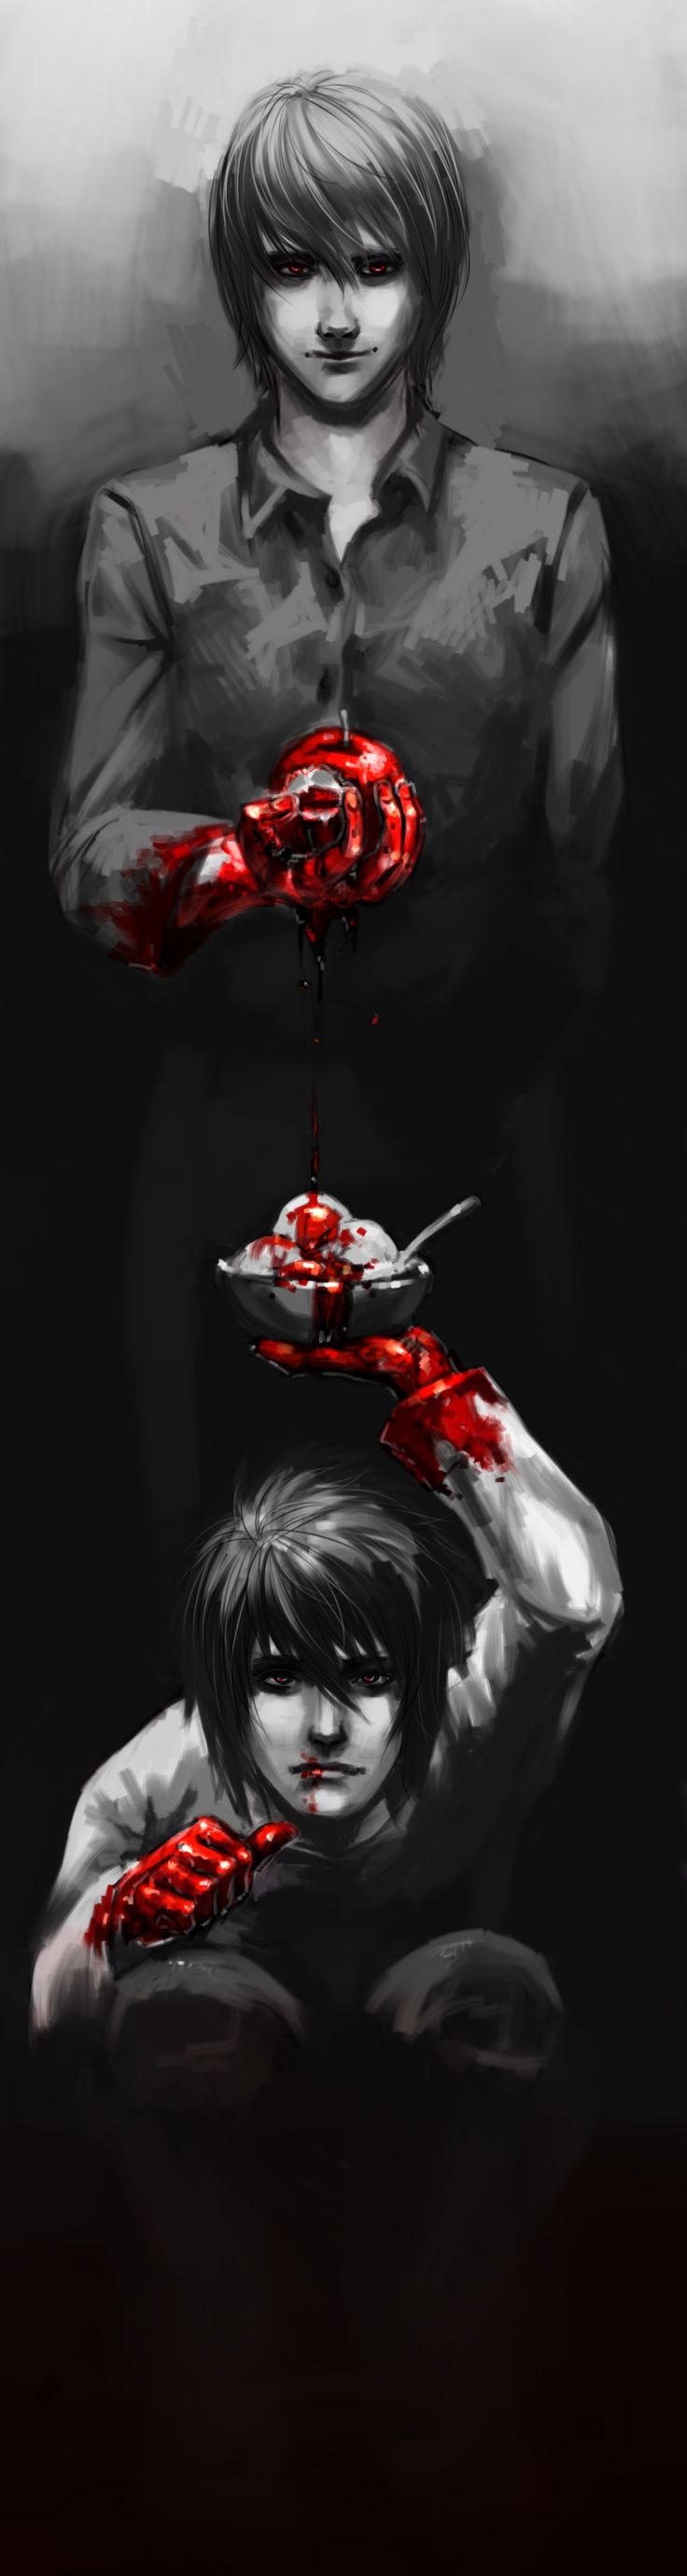 Death Note: Blood On Our Hands by swift-winged-soul.deviantart.com on @DeviantArt